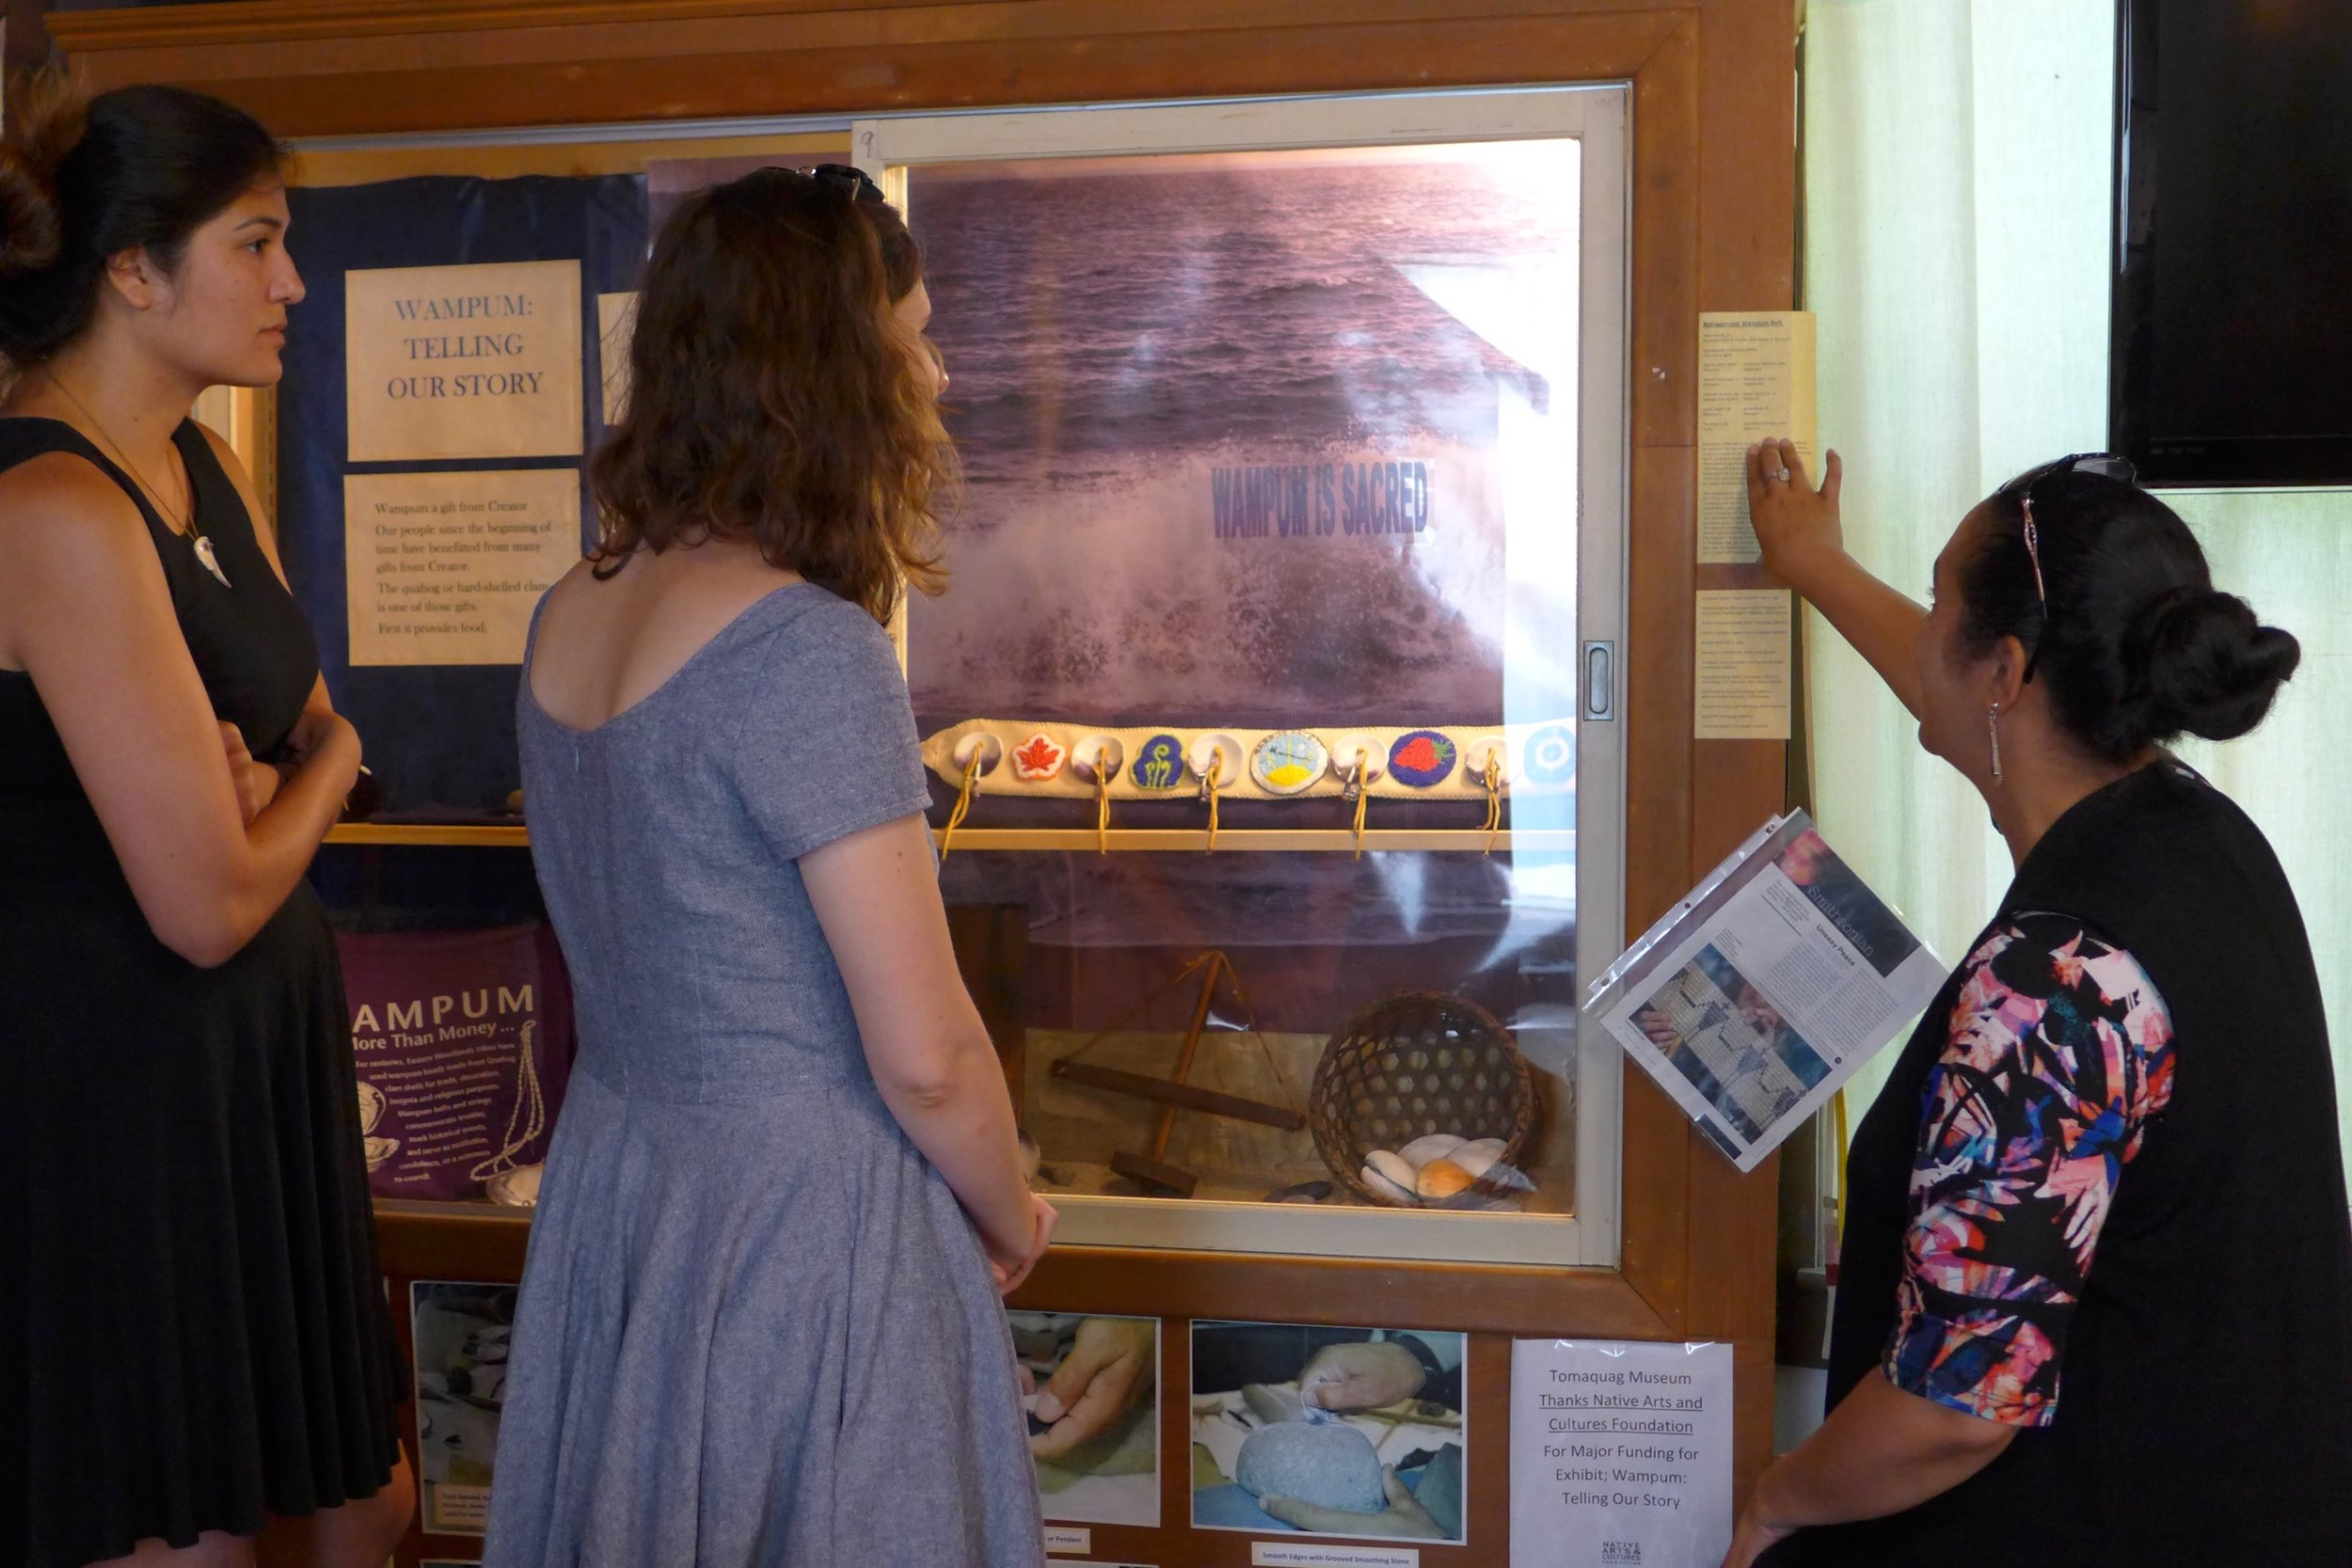 [caption] Stephanie Mach, Lise Puyo, and Lorén Spears looking at the wampum belt made by Narragansett community members under the creative direction of Allen Hazard. Photo by Margaret Bruchac.